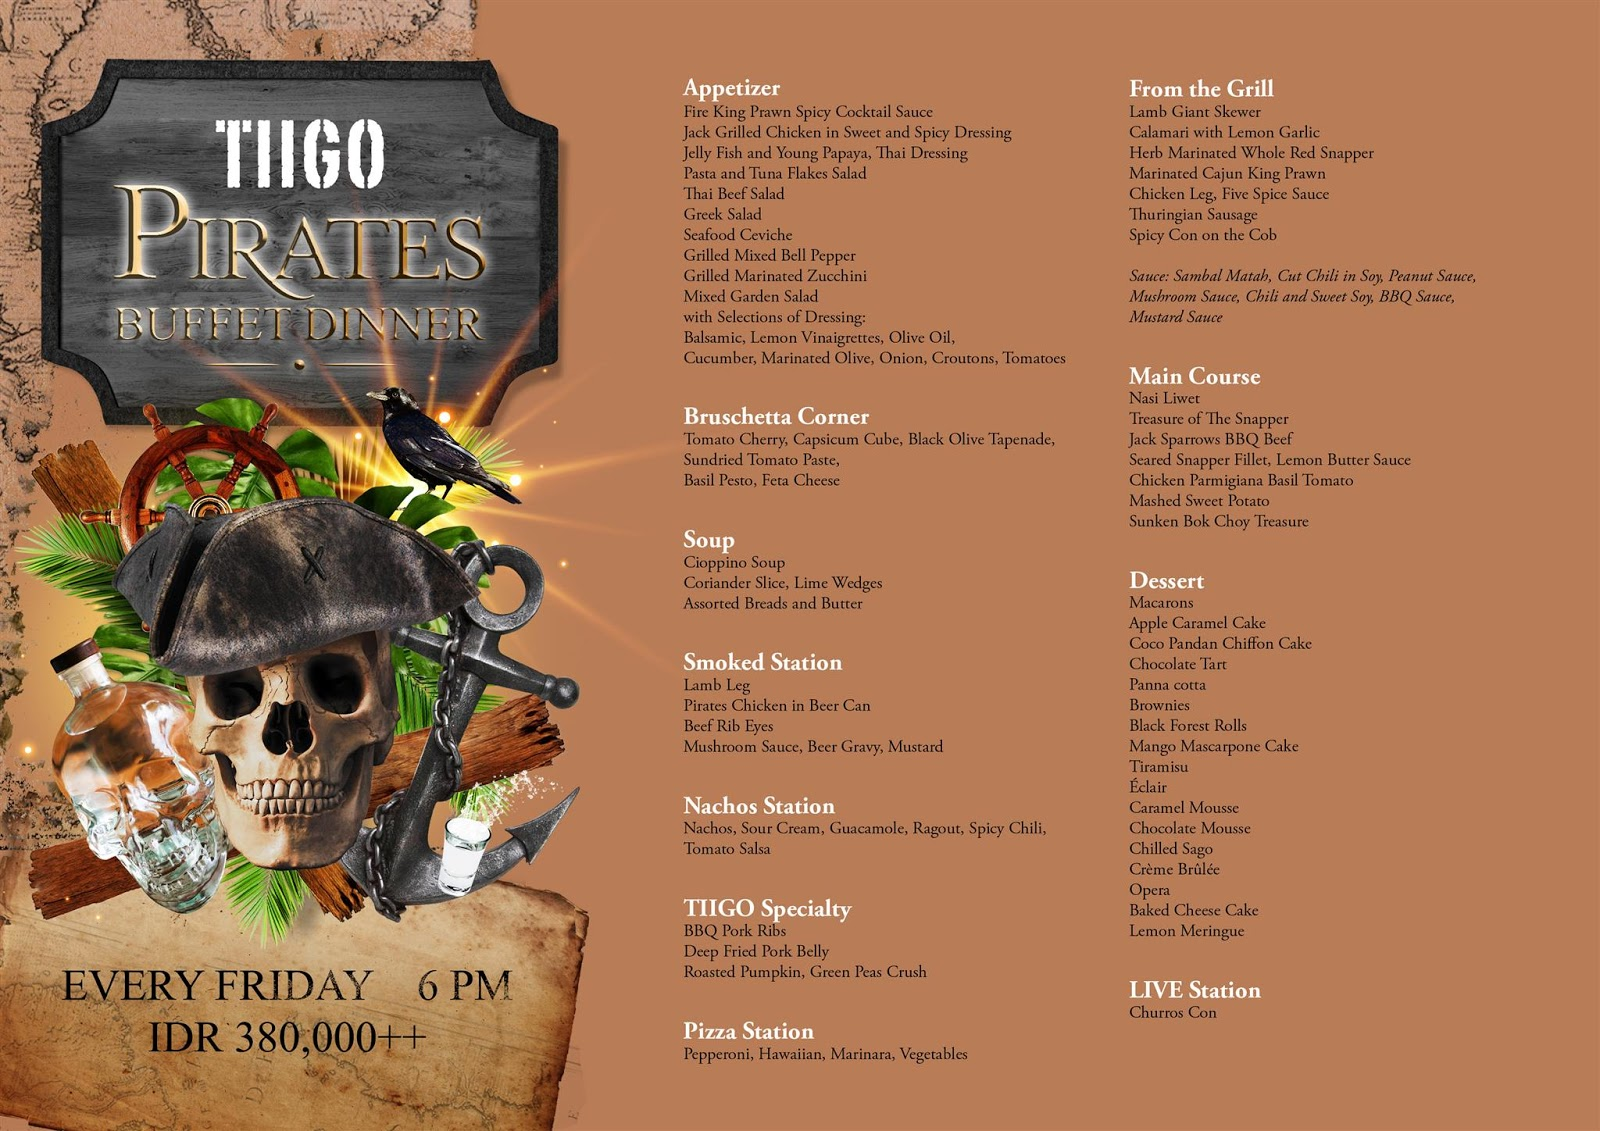 Tiigo Pirates BBQ Night Every Friday at Montigo Resort Nongsa